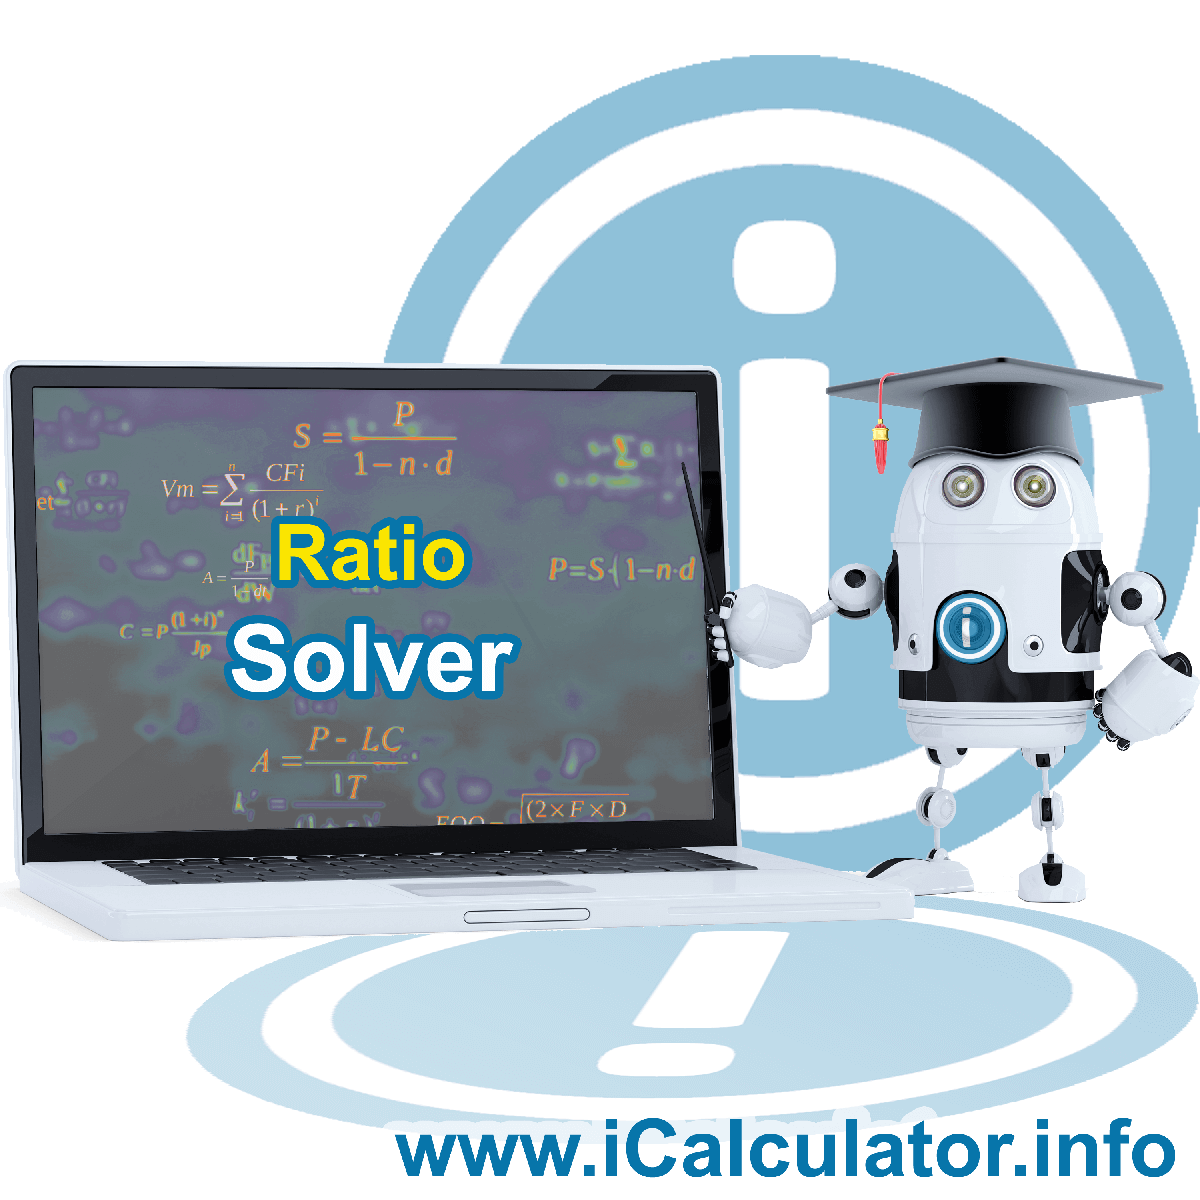 Ratio Solver. This image shows the properties and ratio solver formula for the Ratio Solver